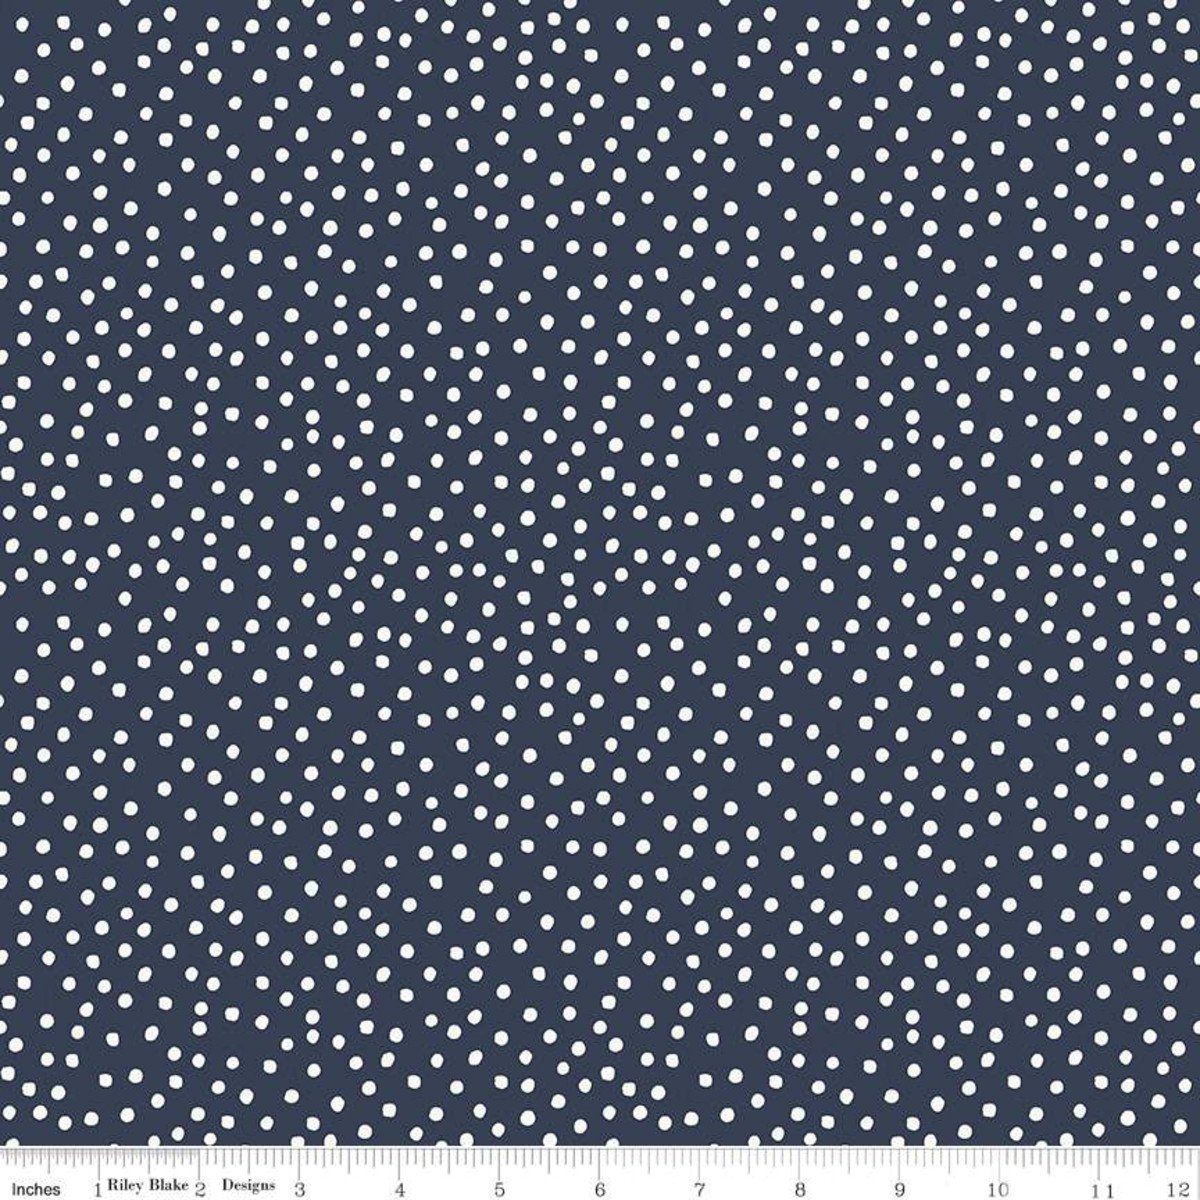 Gingham Foundry Dots NAVY